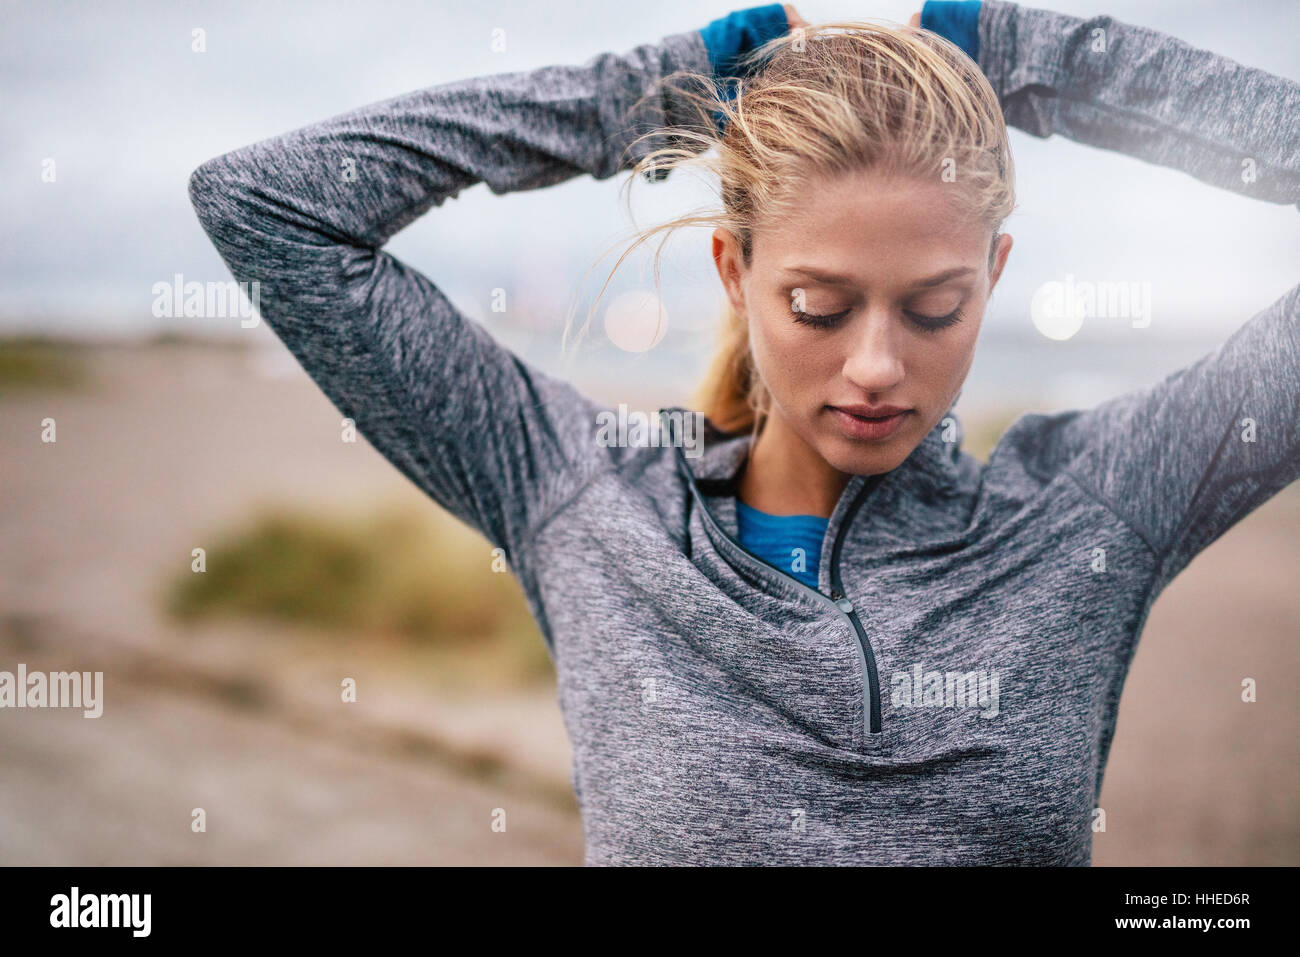 Fit female athlete tying hair before her workout outdoors. Young woman getting ready for training. - Stock Image